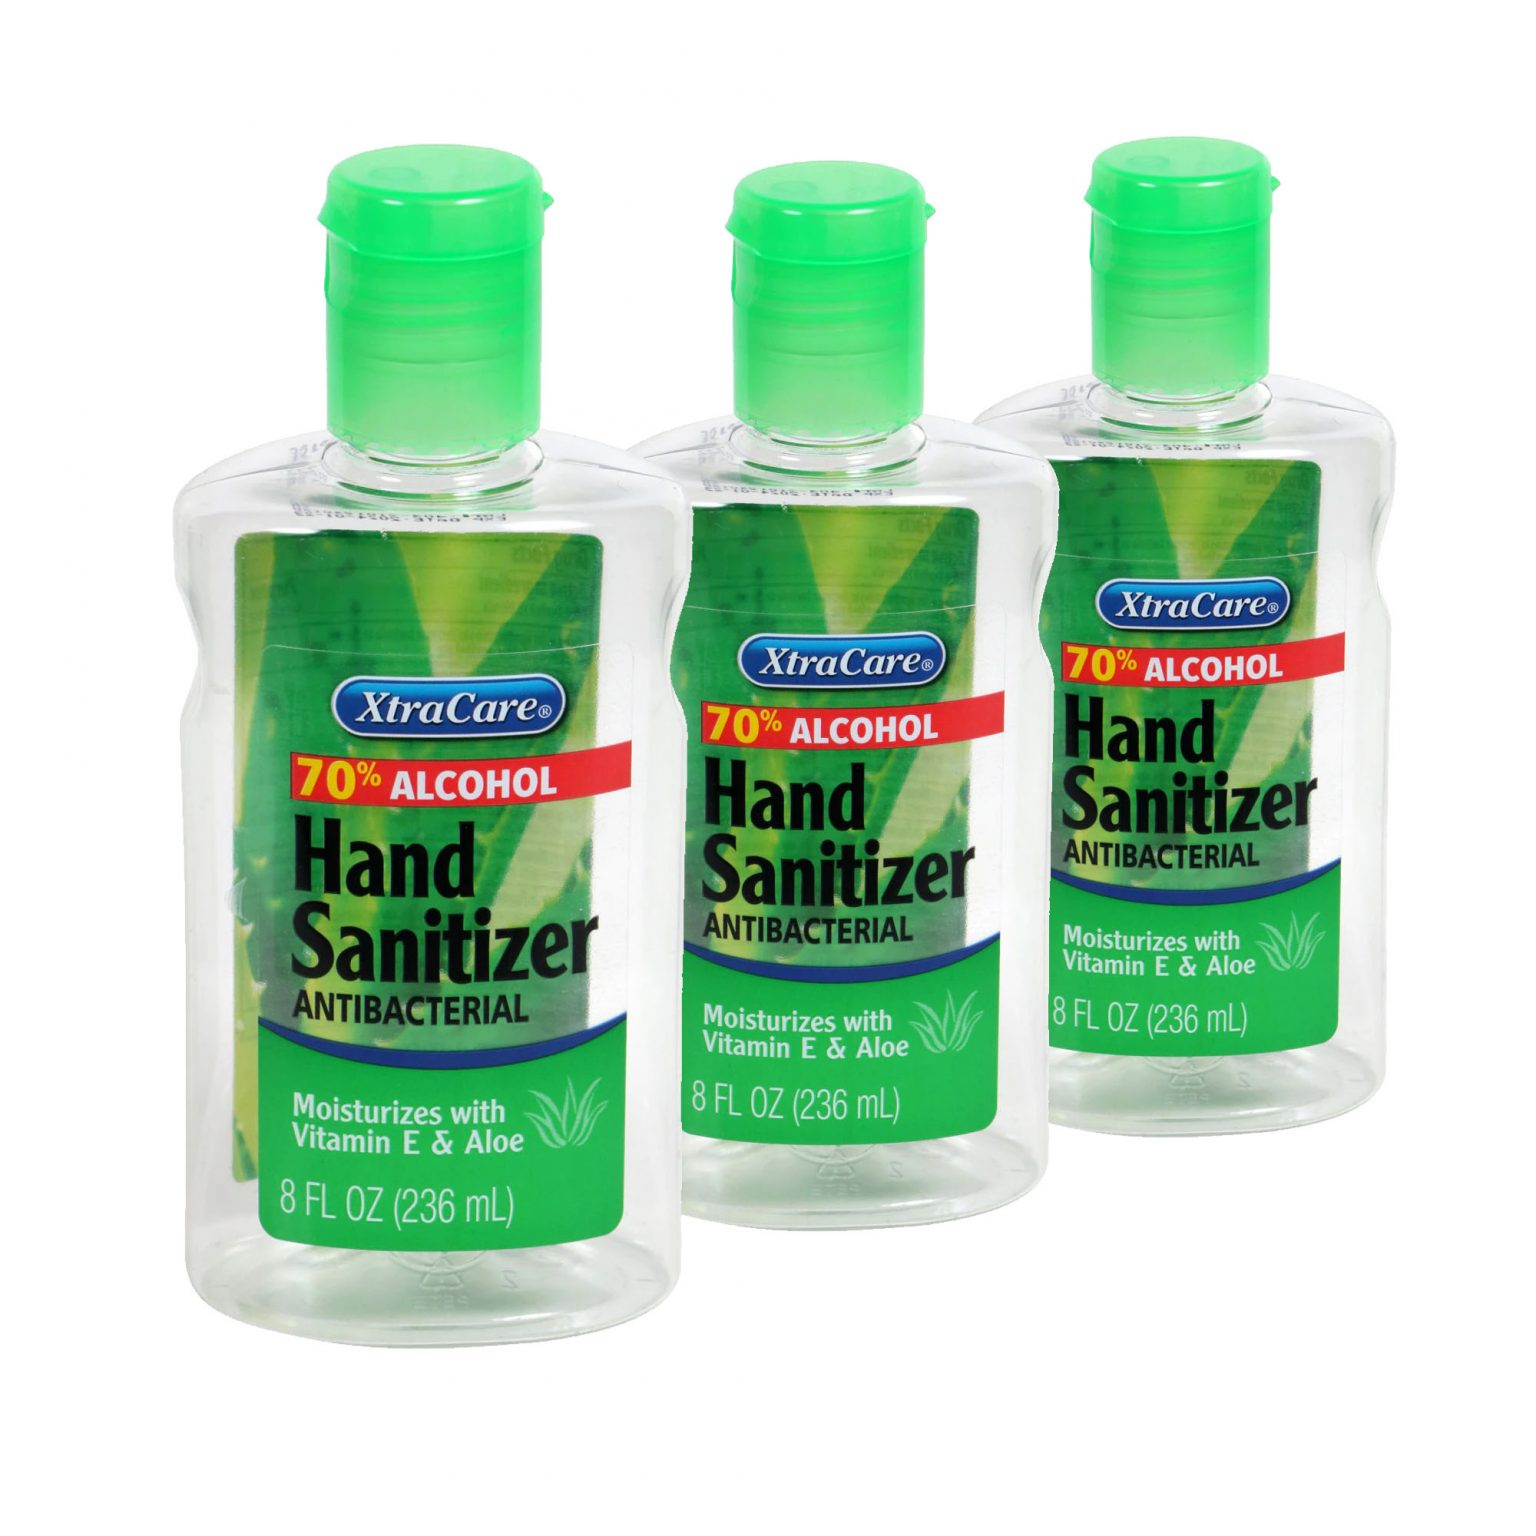 Xtra Care Antibacterial Hand Sanitizer with Vitamin E & Aloe 8oz Bottles 3 pack